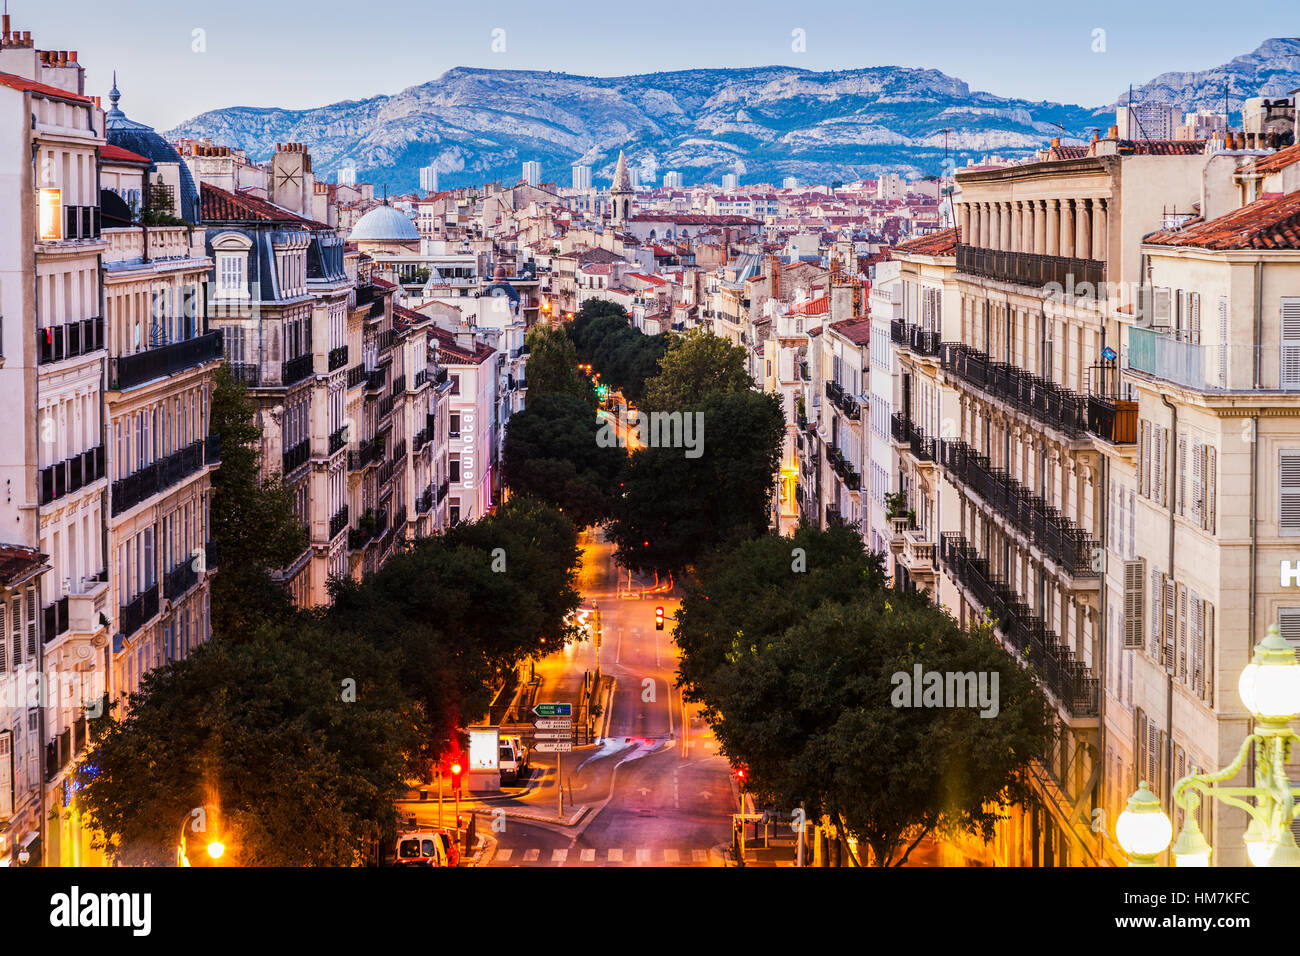 France, Provence-Alpes-Cote d'Azur, Marseille, Street in city, mountain in background - Stock Image